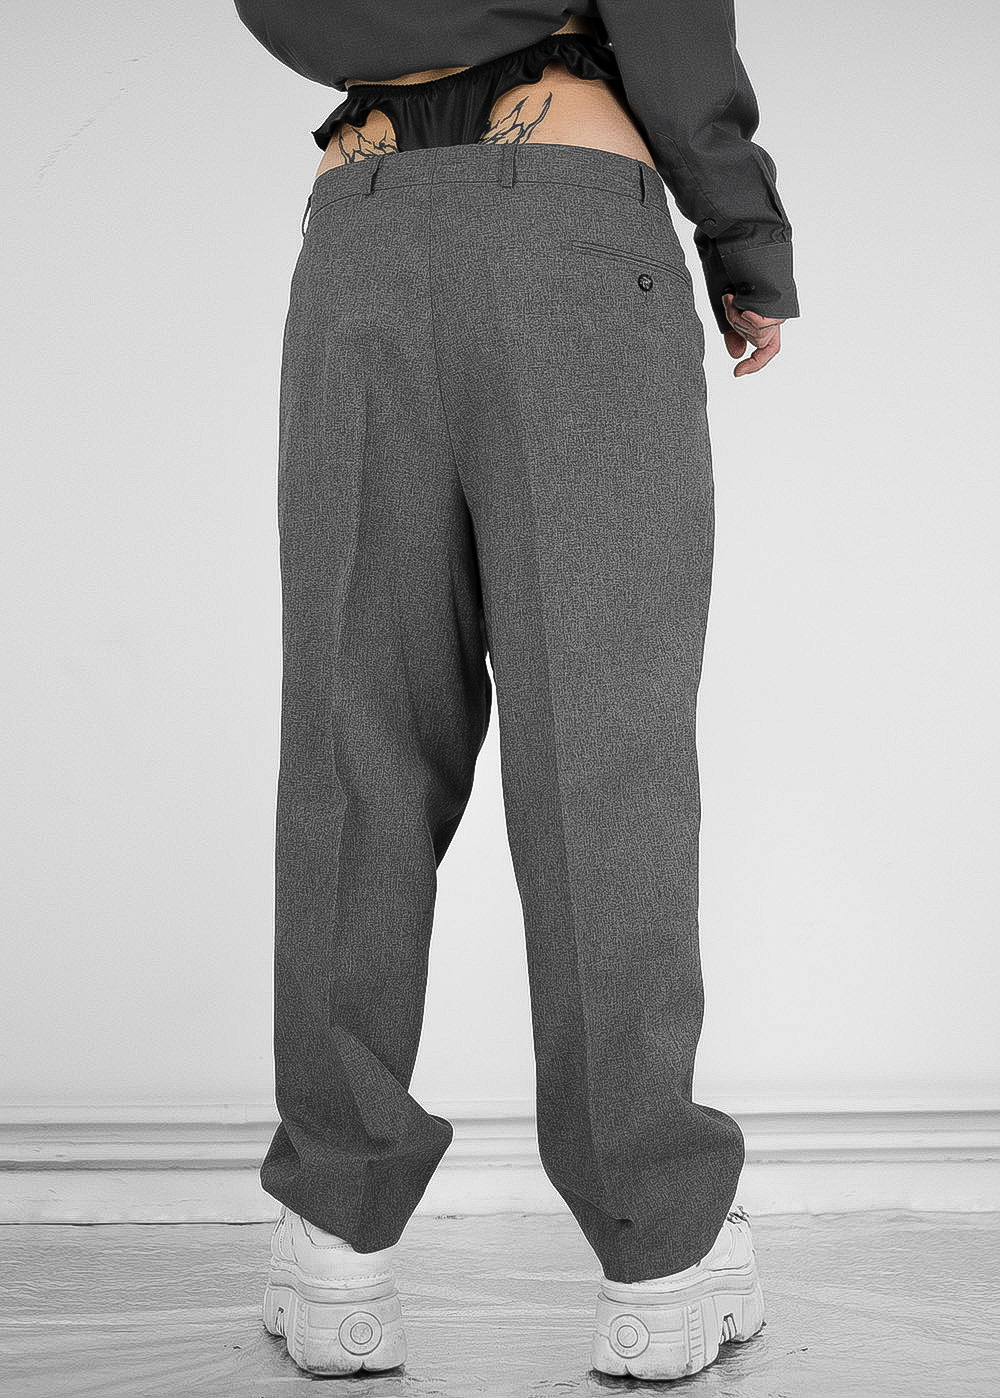 Heather Grey Pants 8